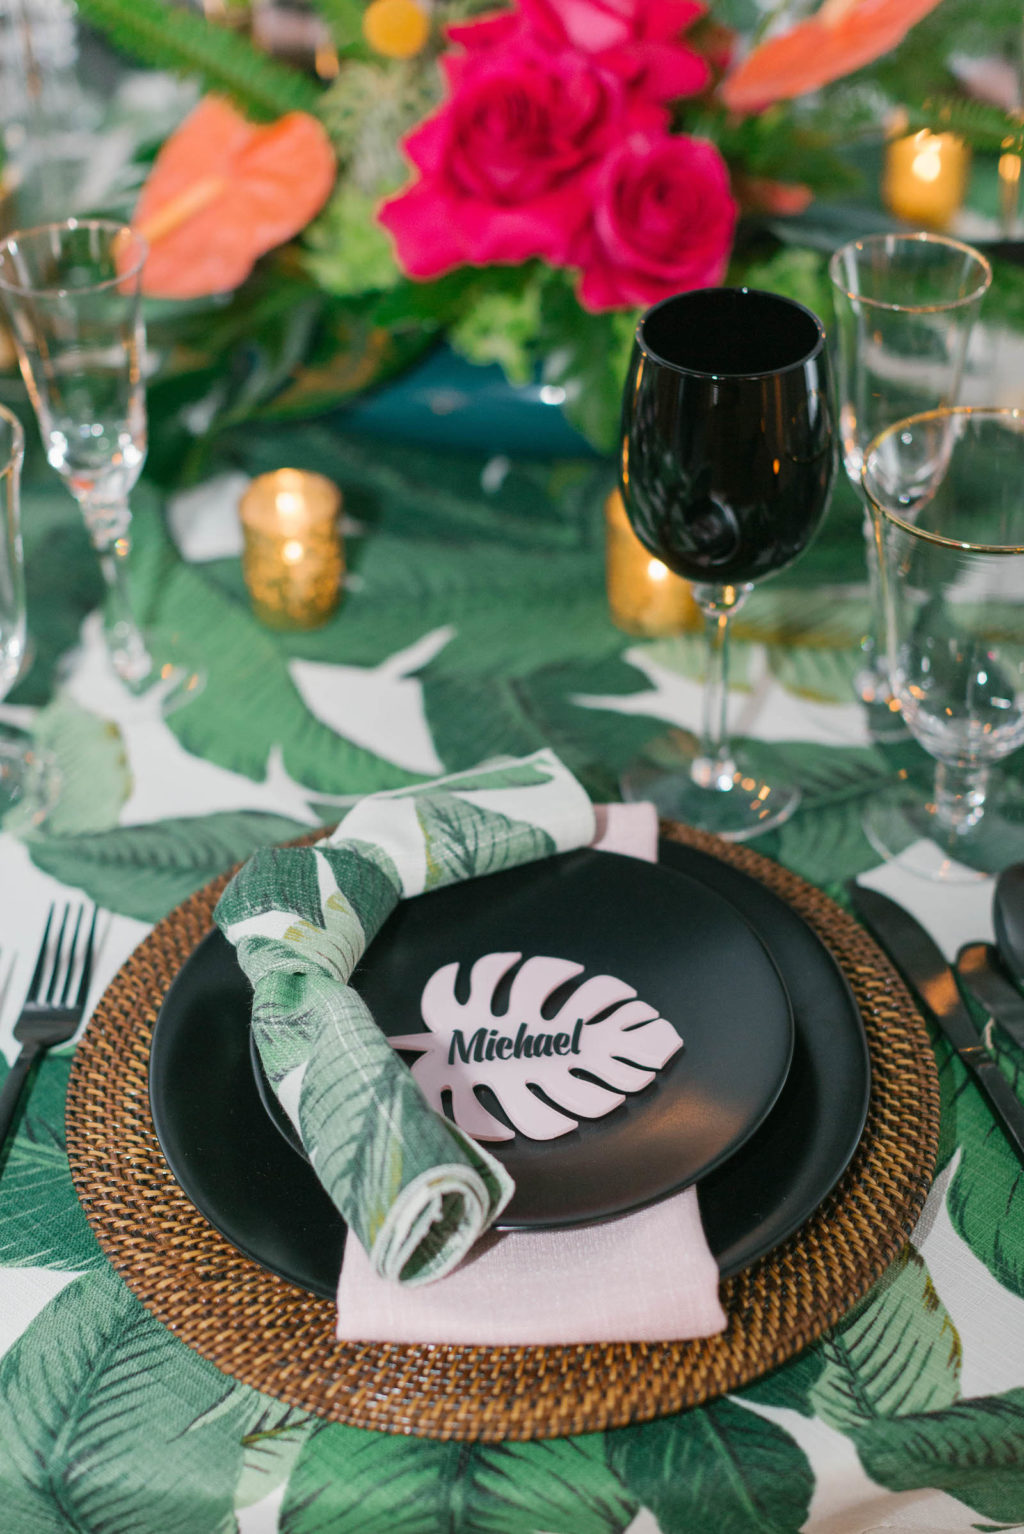 Palm Leave Linen with Wicker Charger, Black Place Setting, Palm Leaf Name Card,and Dishes, and Vibrant Pink and Orange Centerpiece | Tropical Destination Beach Wedding Inspiration | Bellwether Beach Resort Styled with Love by Marry Me Tampa Bay